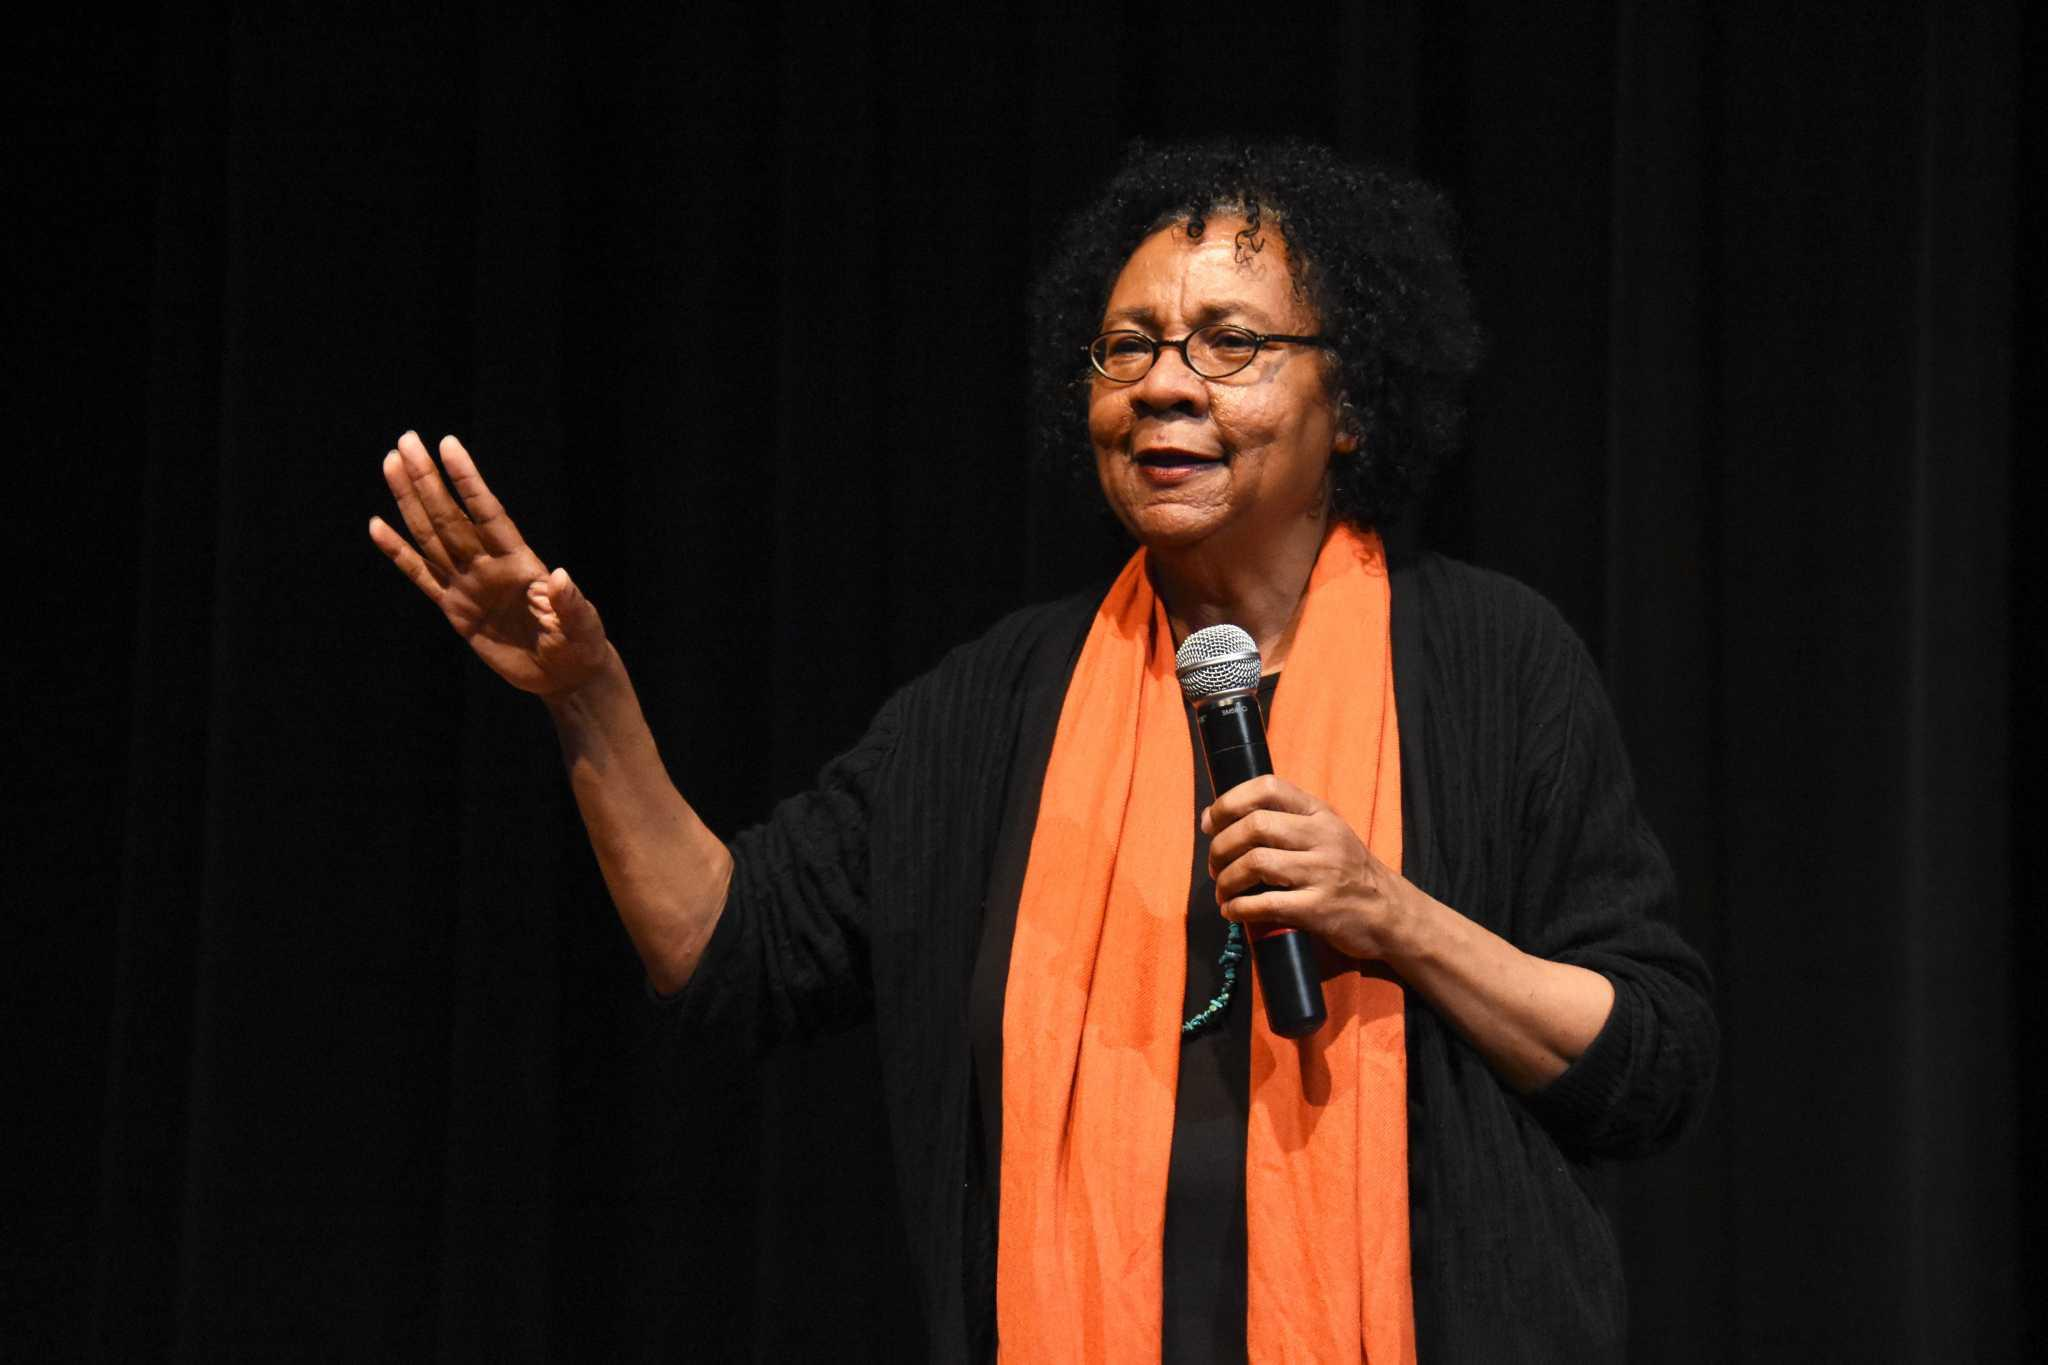 Author and social activist Bell Hooks gives a talk at Jack Adams Hall at SF State on February 20, 2017 (Tate Drucker/Xpress).